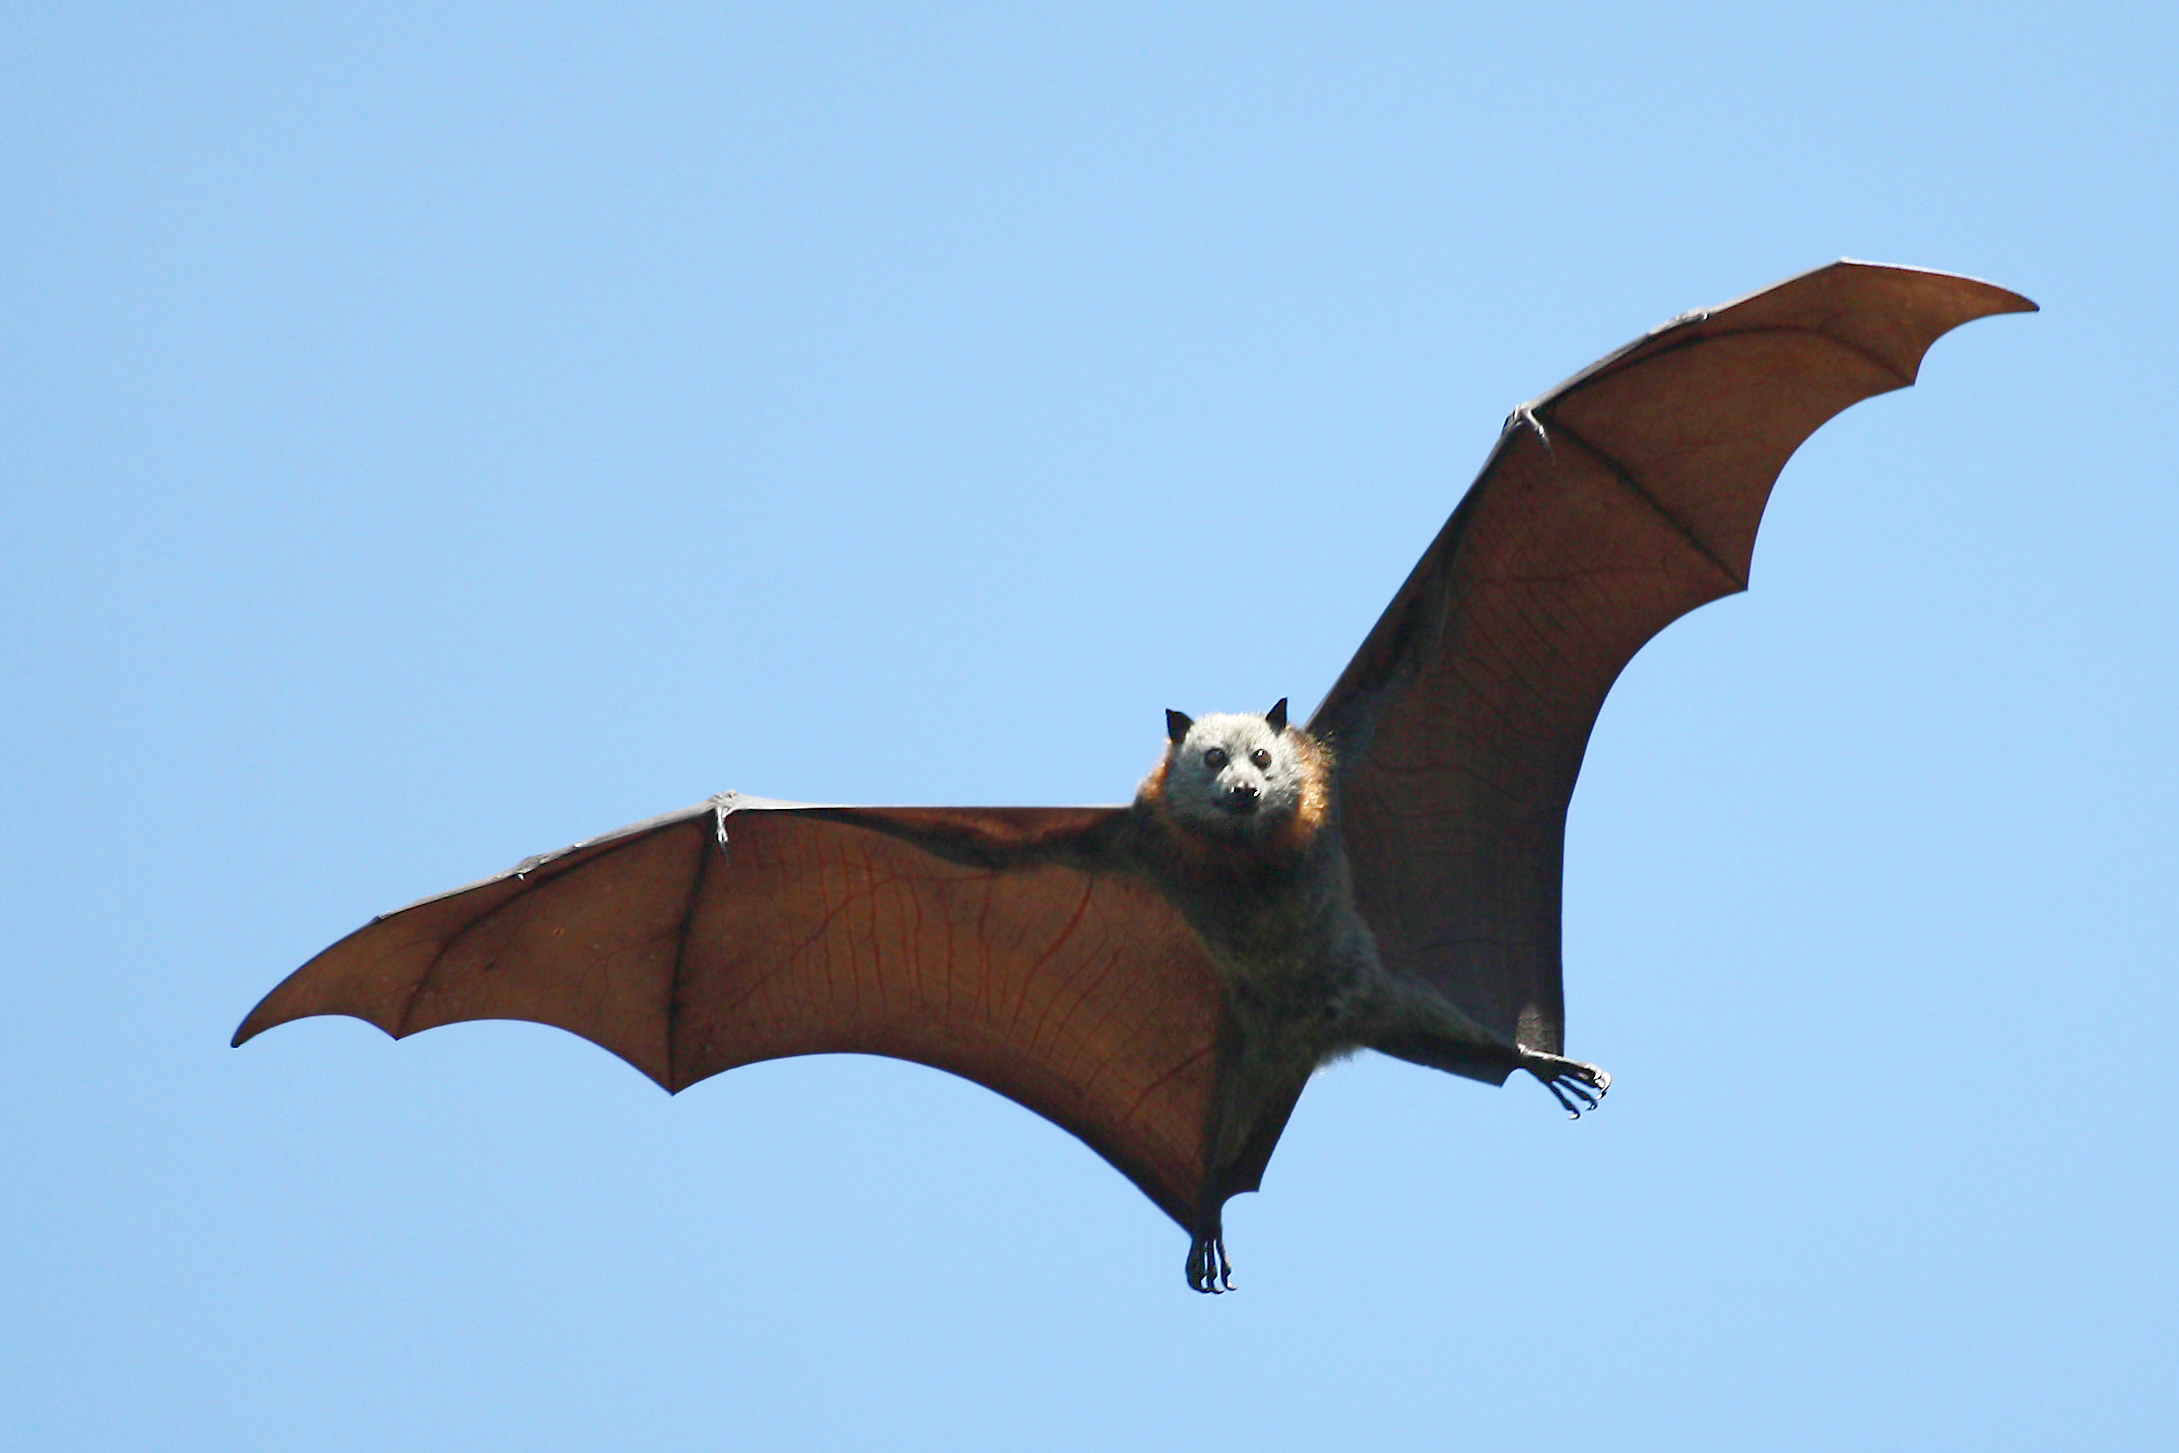 A bat flying with wings fully spread against a blue sky